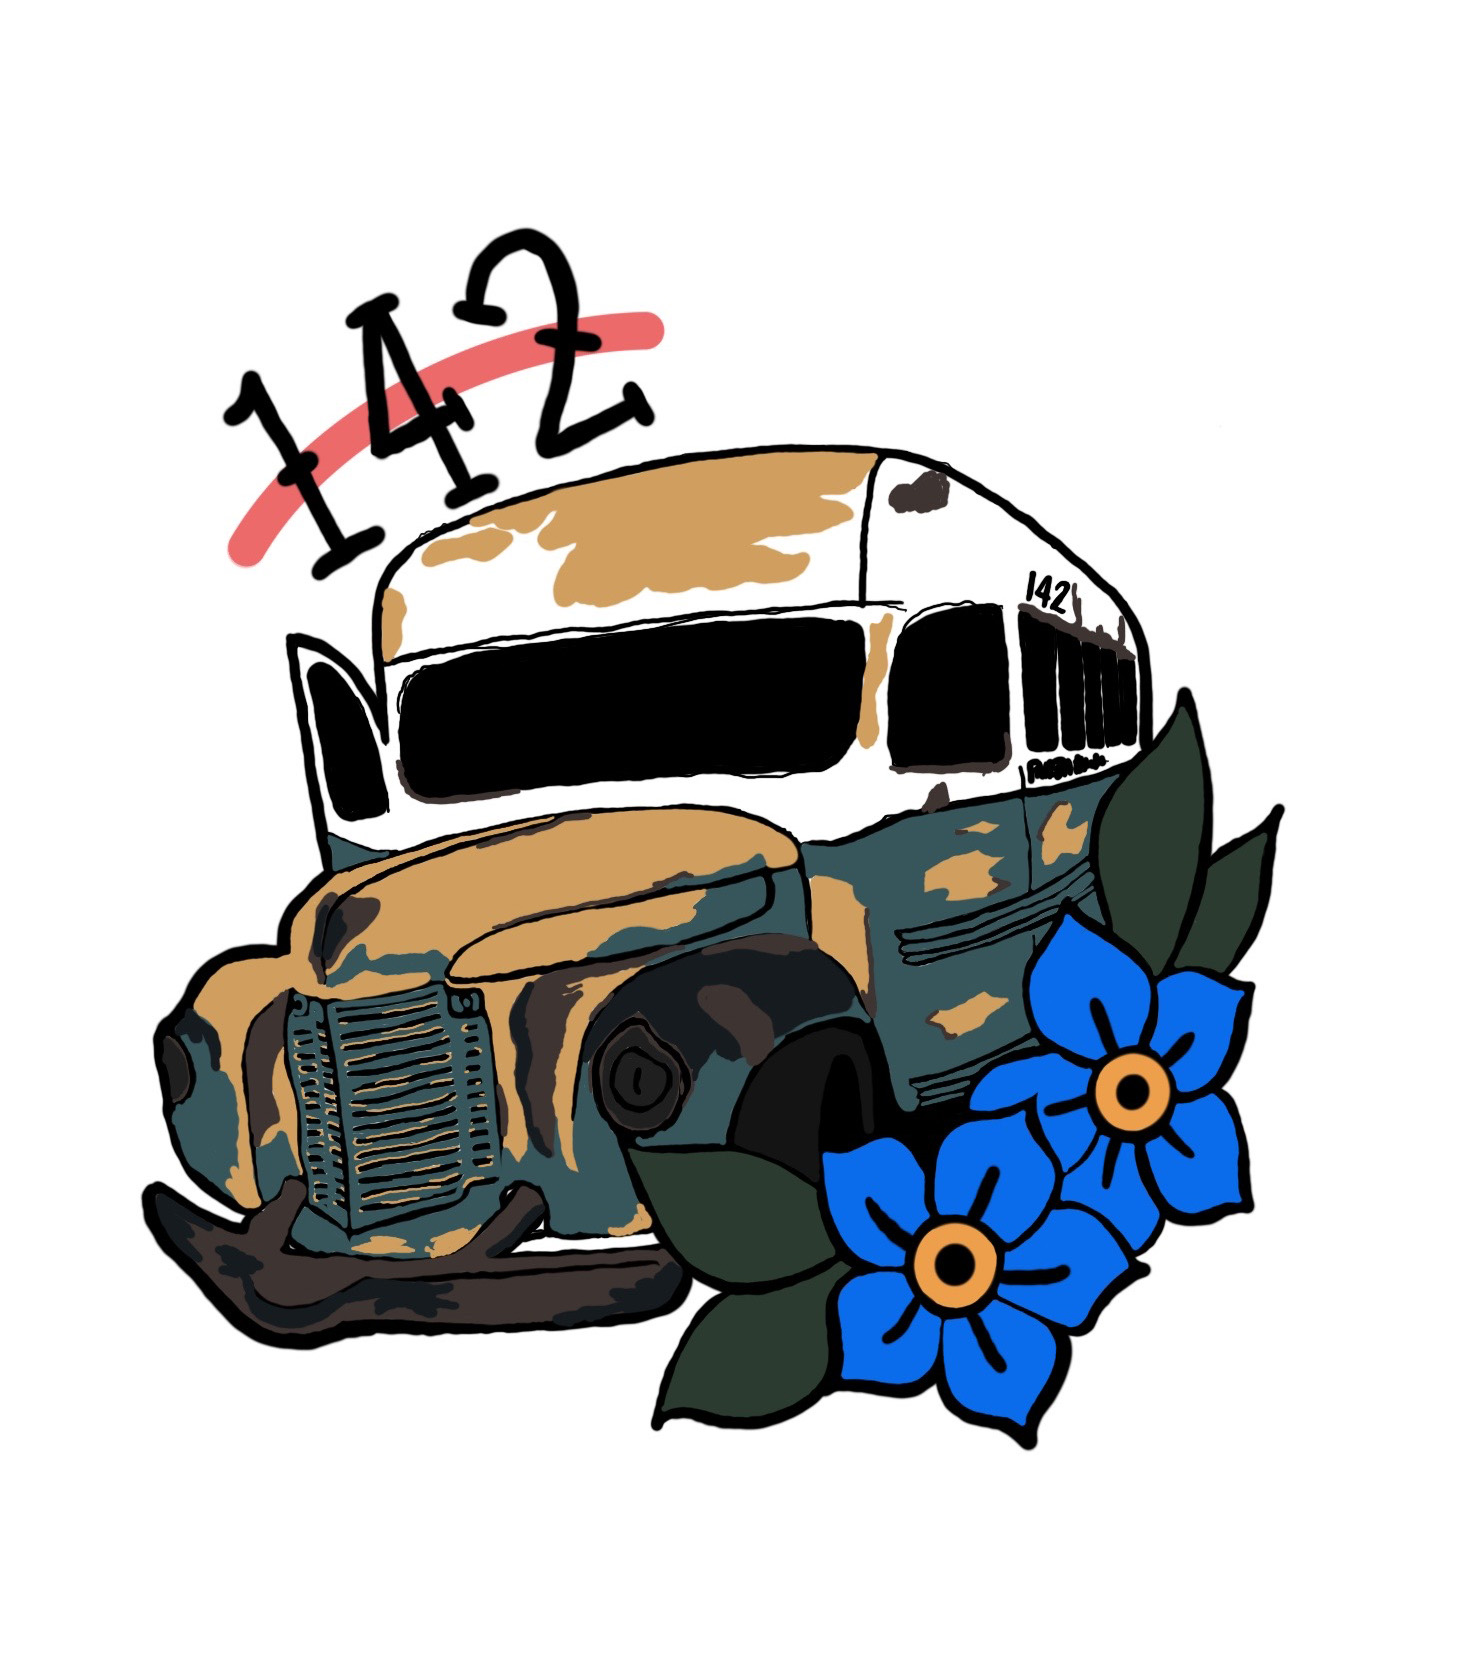 Justin Falke's Bus 142 Tattoo Design